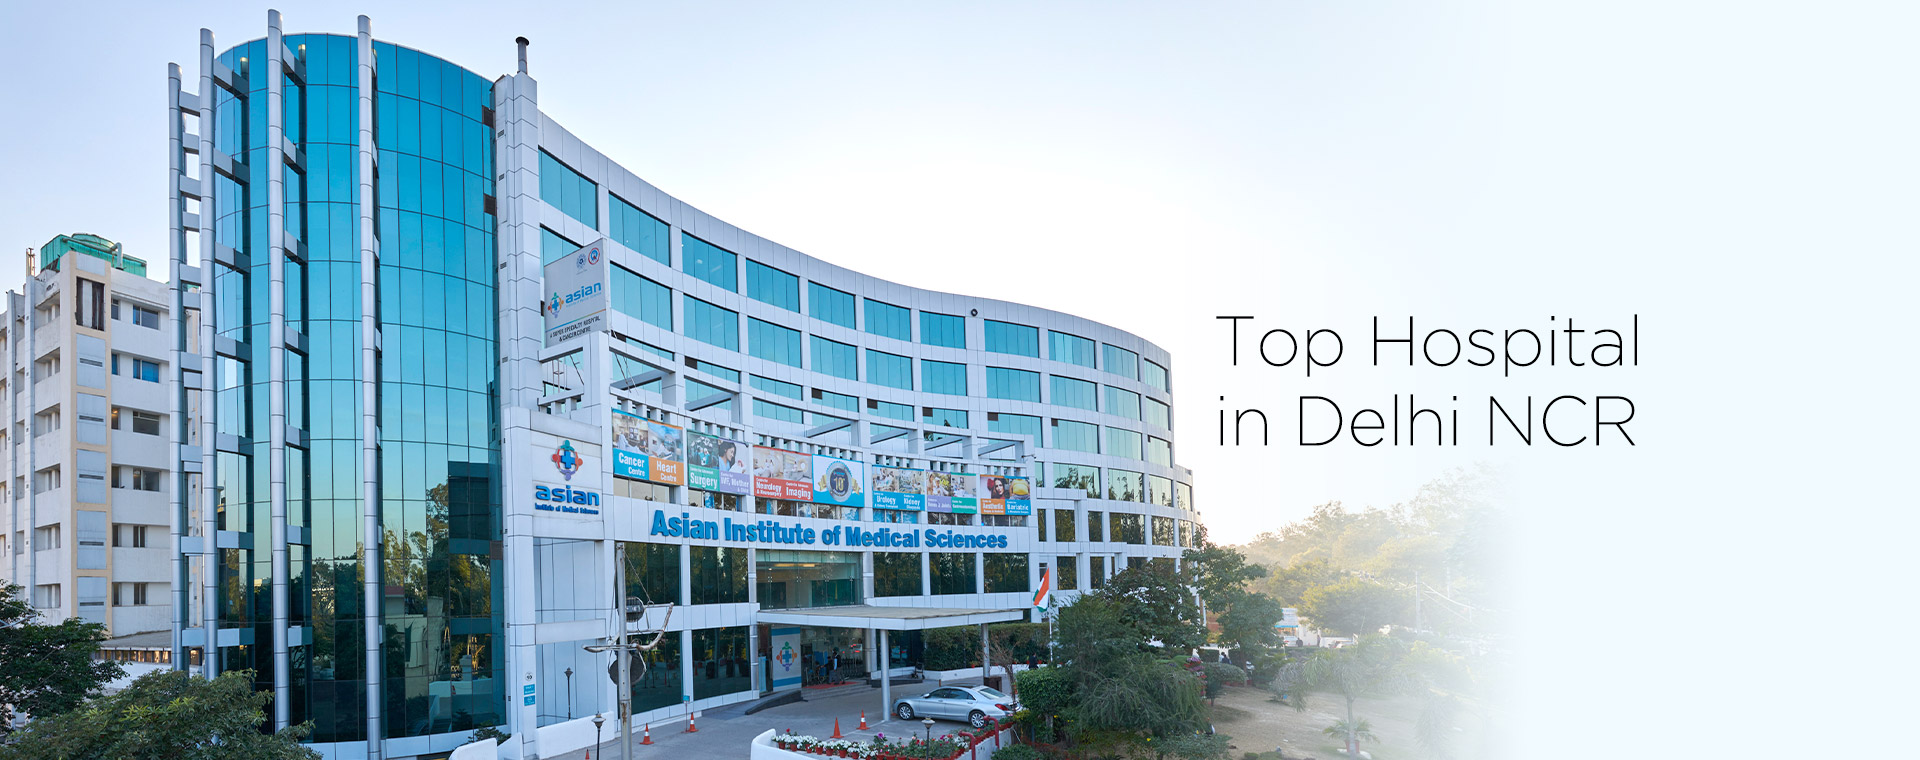 Top Hospital In Delhi NCR